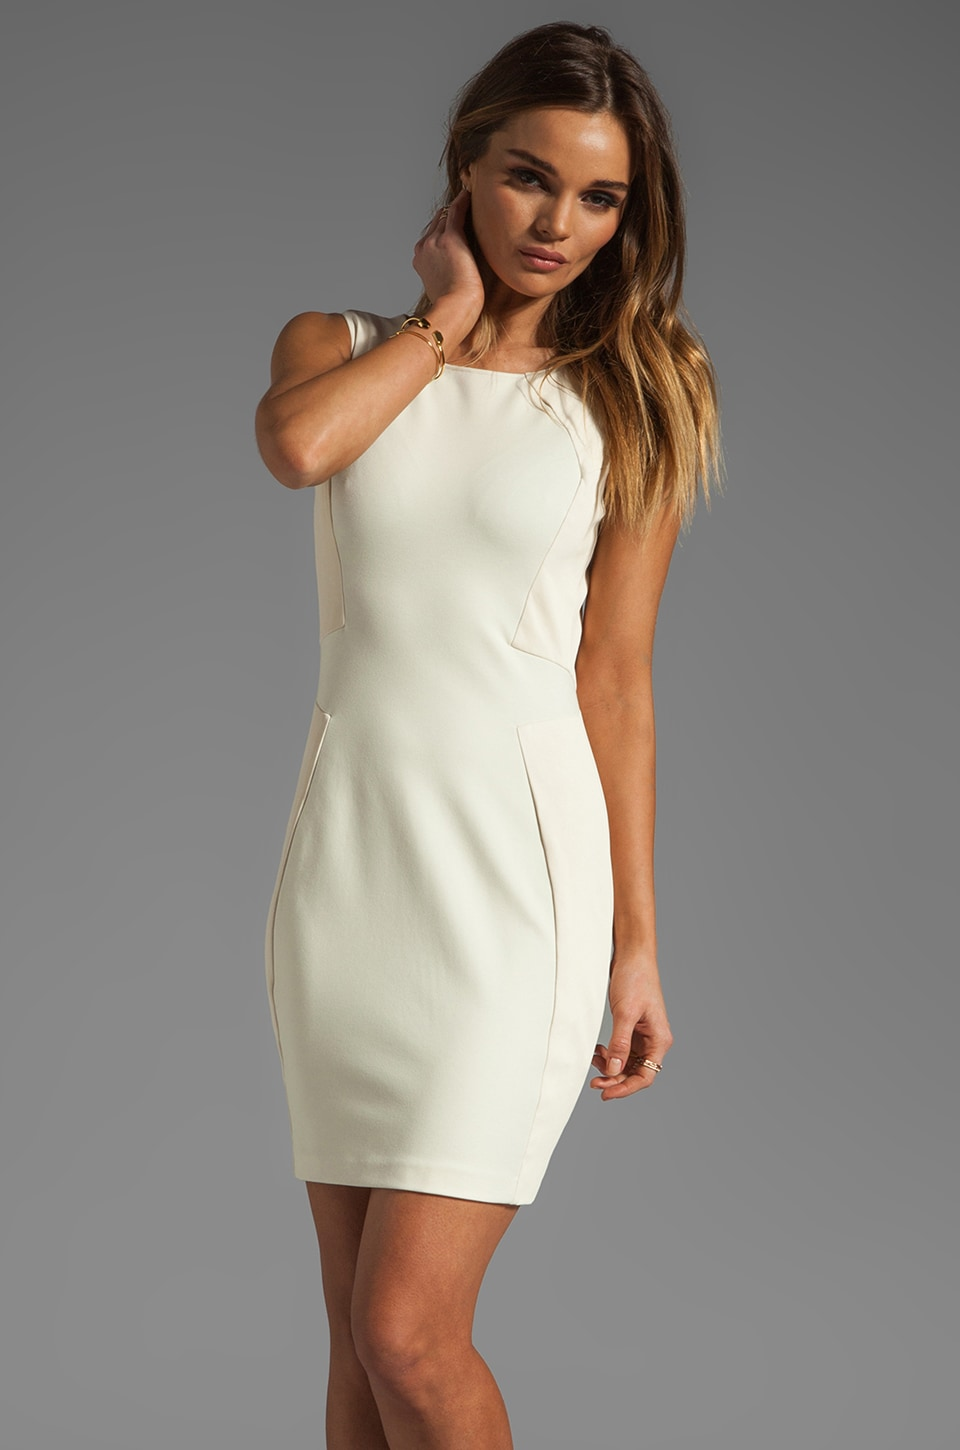 Halston Heritage Sleeveless Dress with Leather Trim Detail in Cream